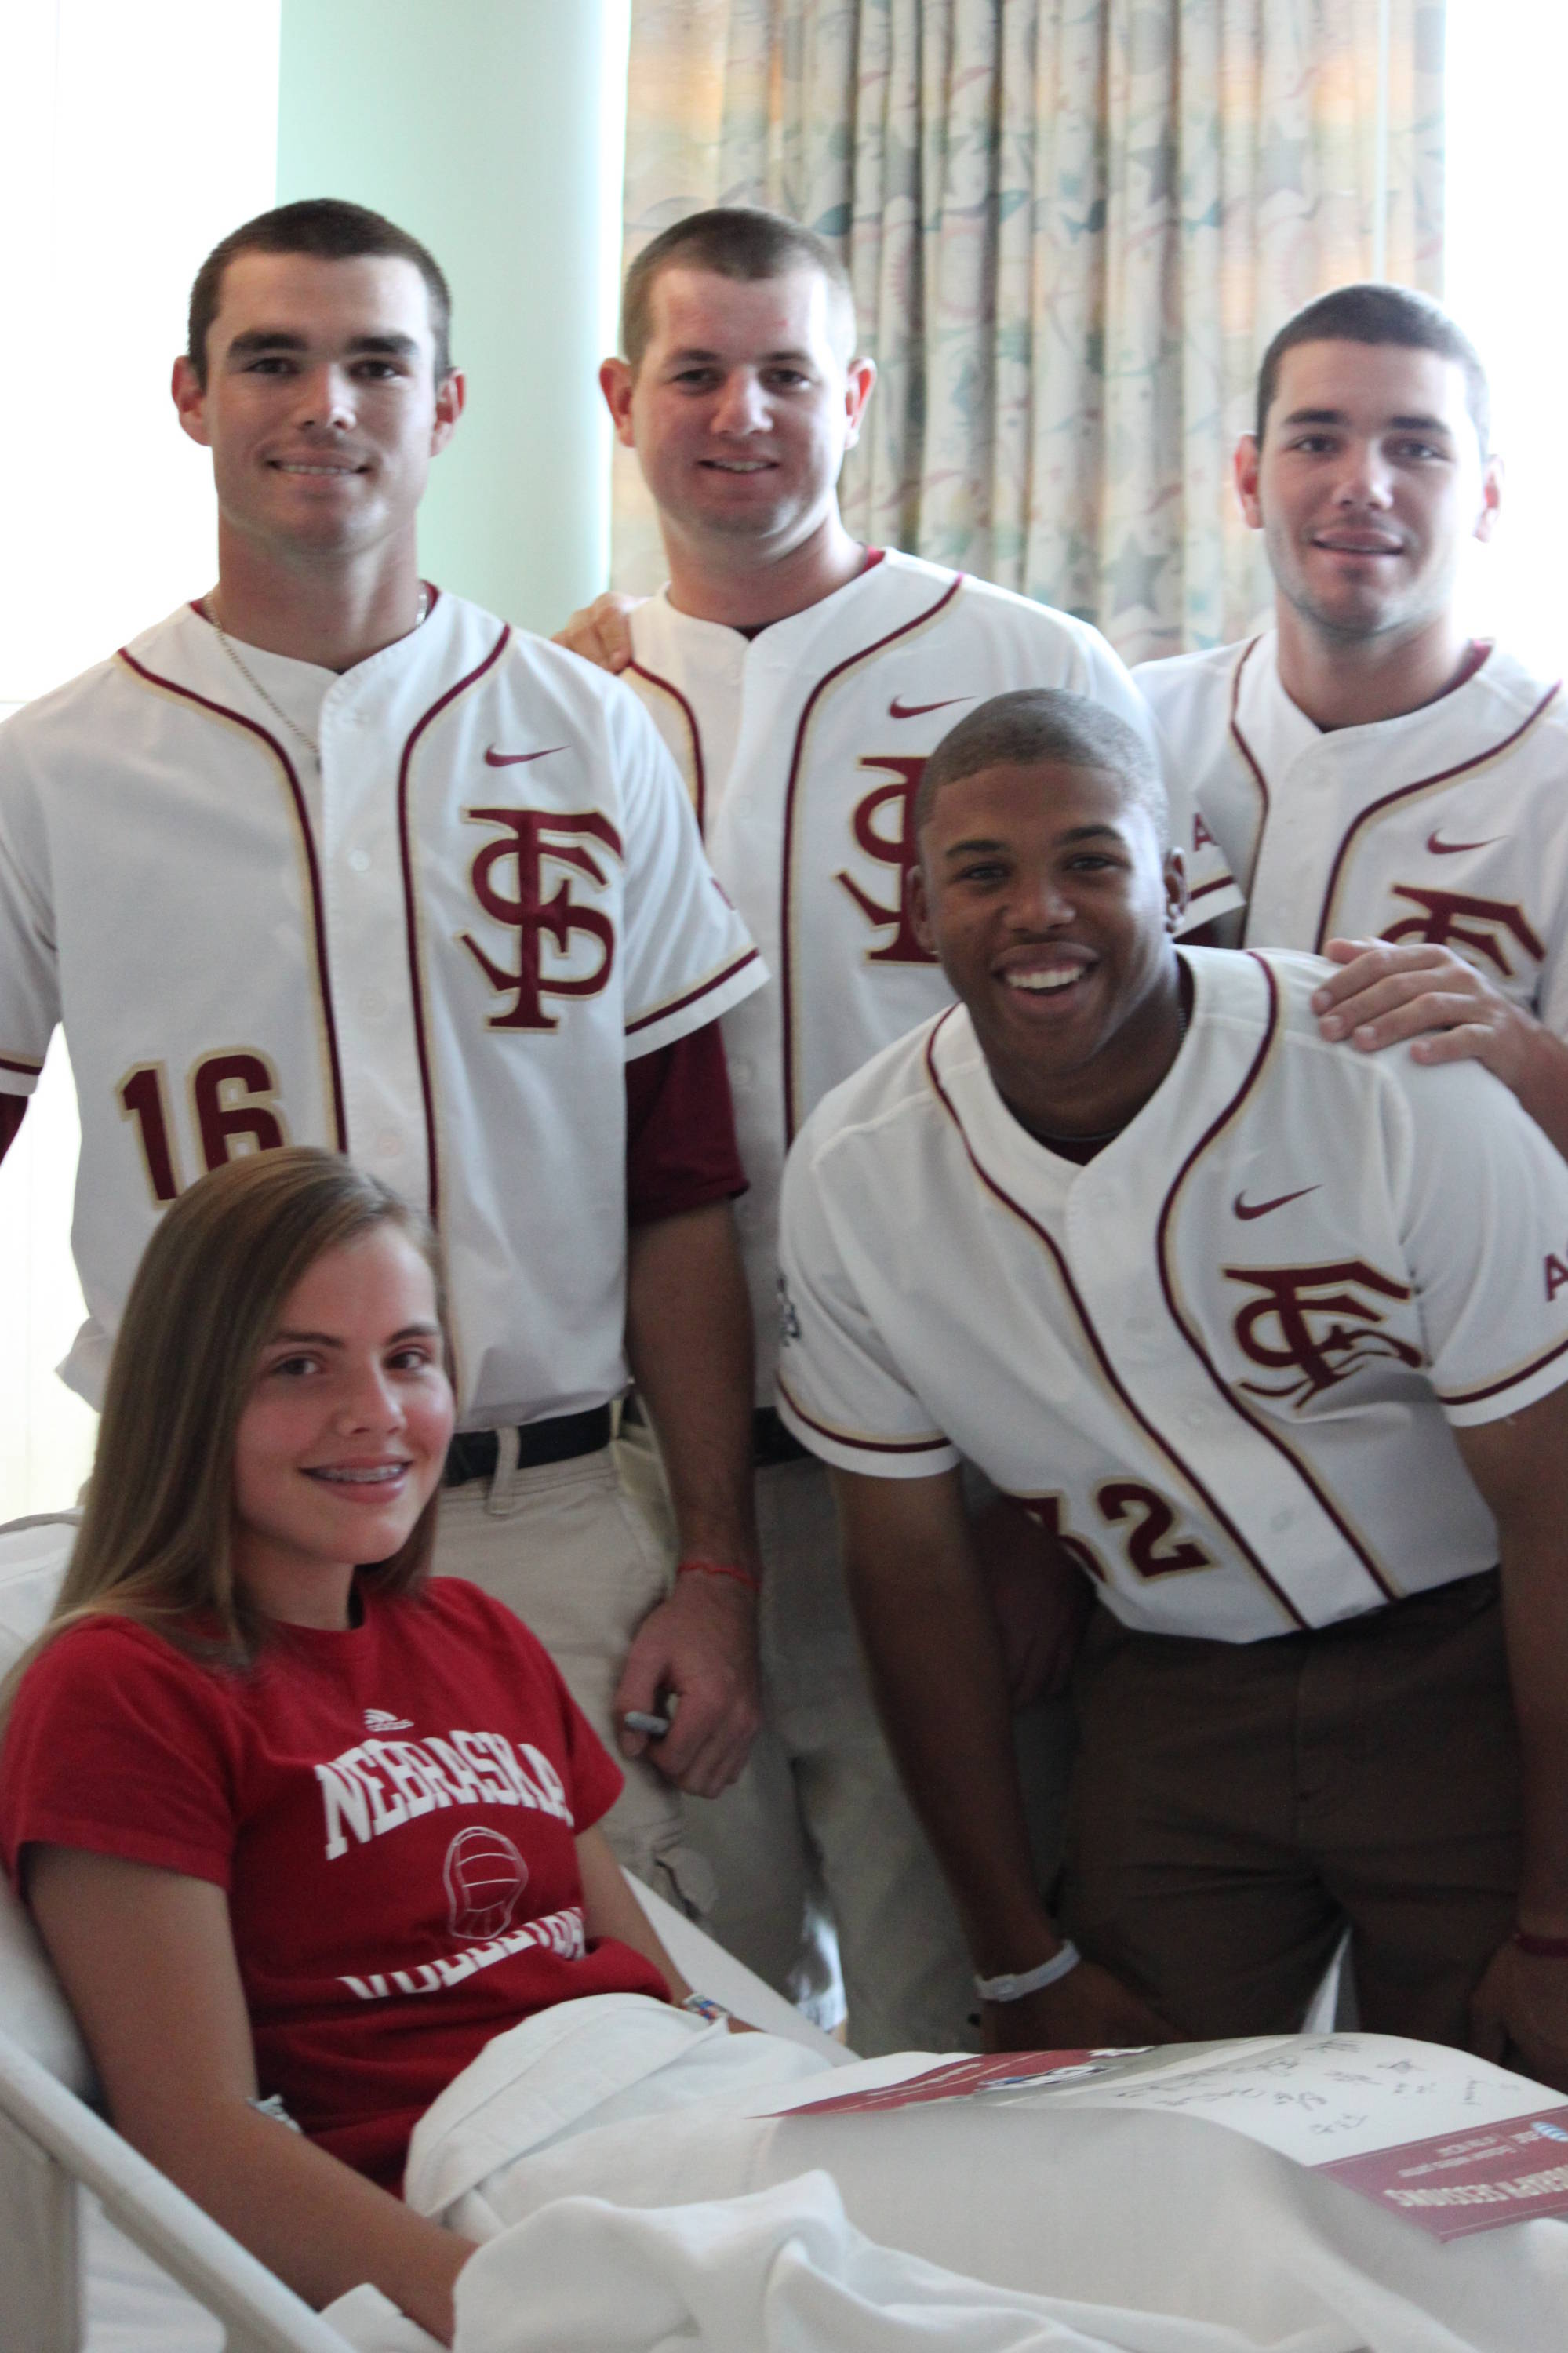 Jayce Boyd, Daniel Bennett, Robby Scott and Sherman Johnson on a visit to the Children's Hospital in Omaha